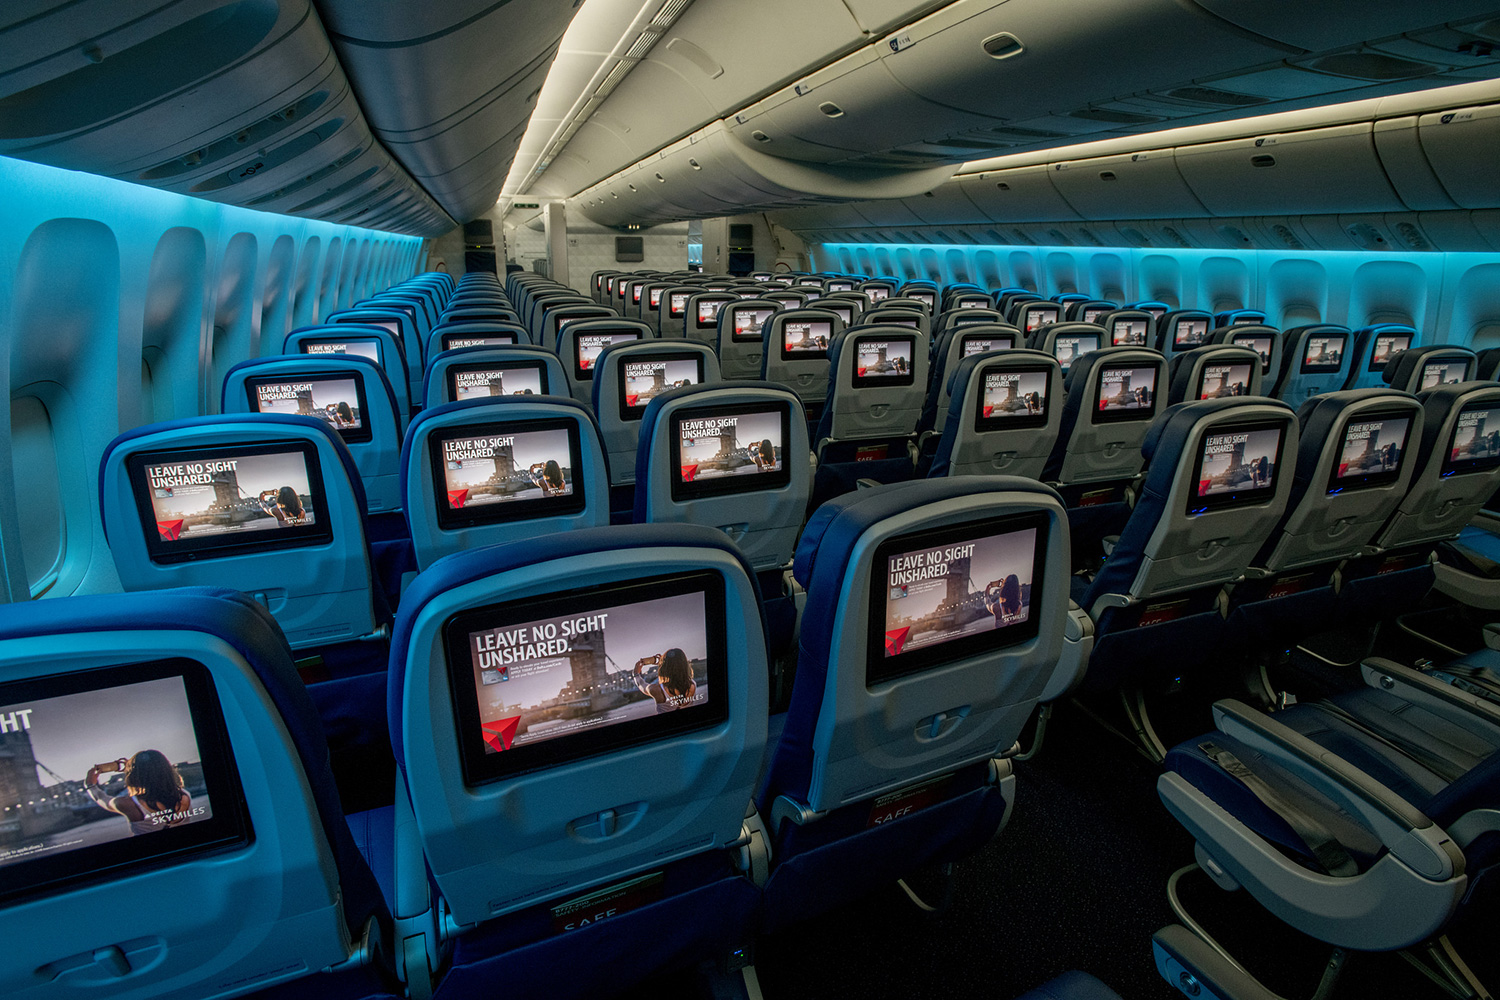 delta air lines opts for larger economy seats recommend